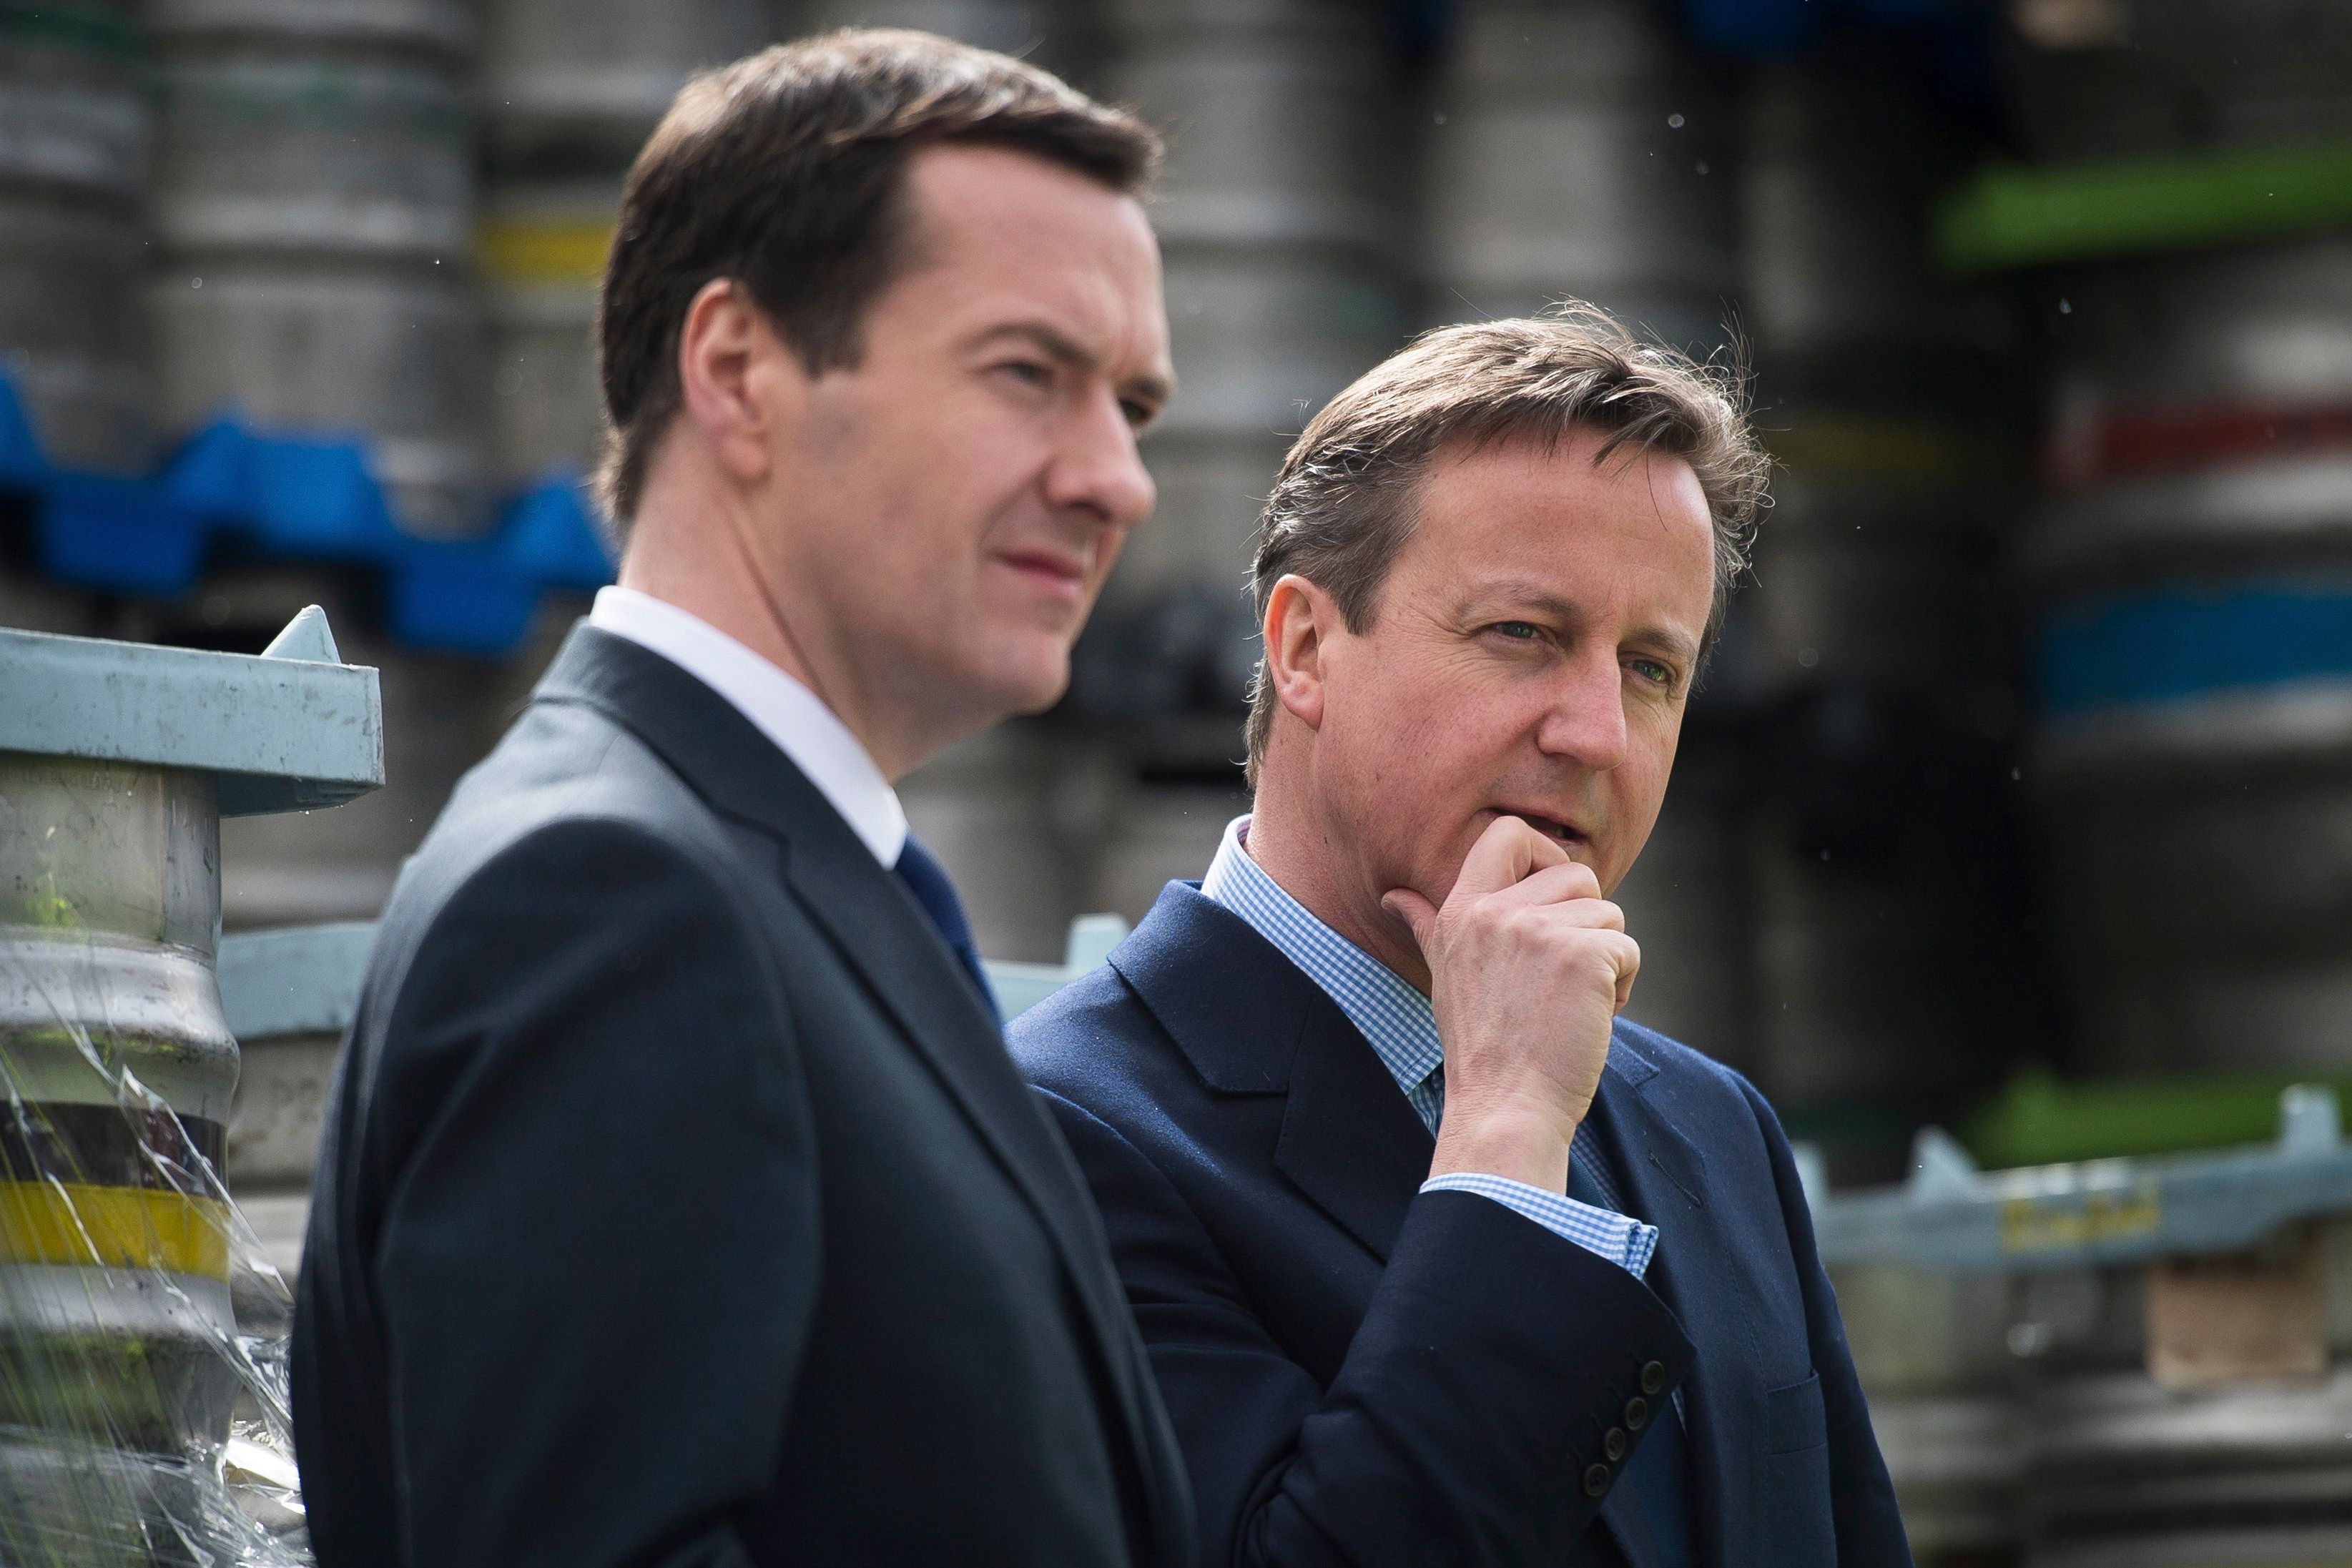 Tories Handed Big Business £110 Billion Tax 'Giveaway' Amid Austerity-Driven Cuts, Labour